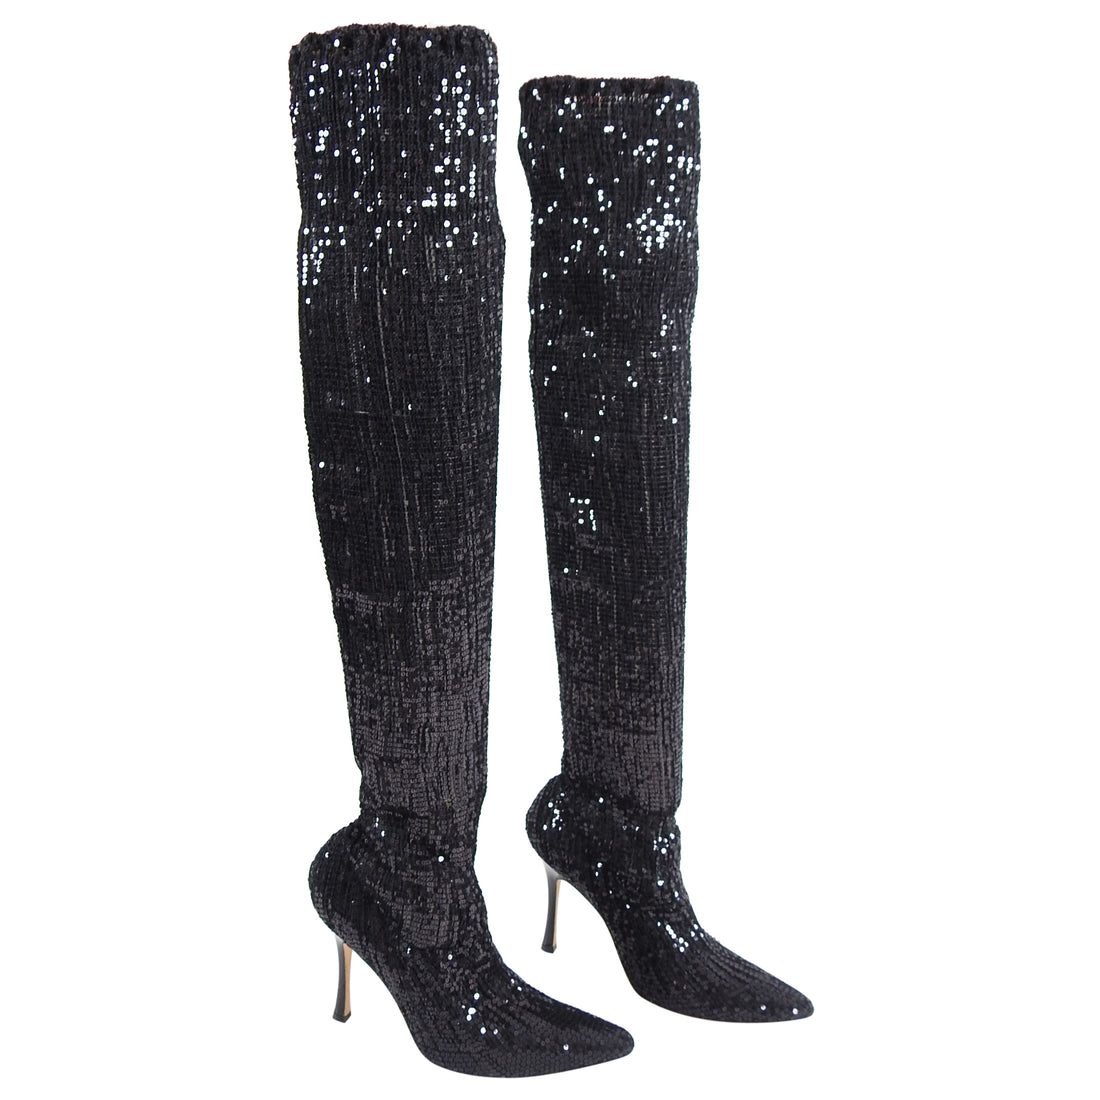 Manolo Blahnik Pascalare Black Sequin Over the Knee Sock Boots - 37